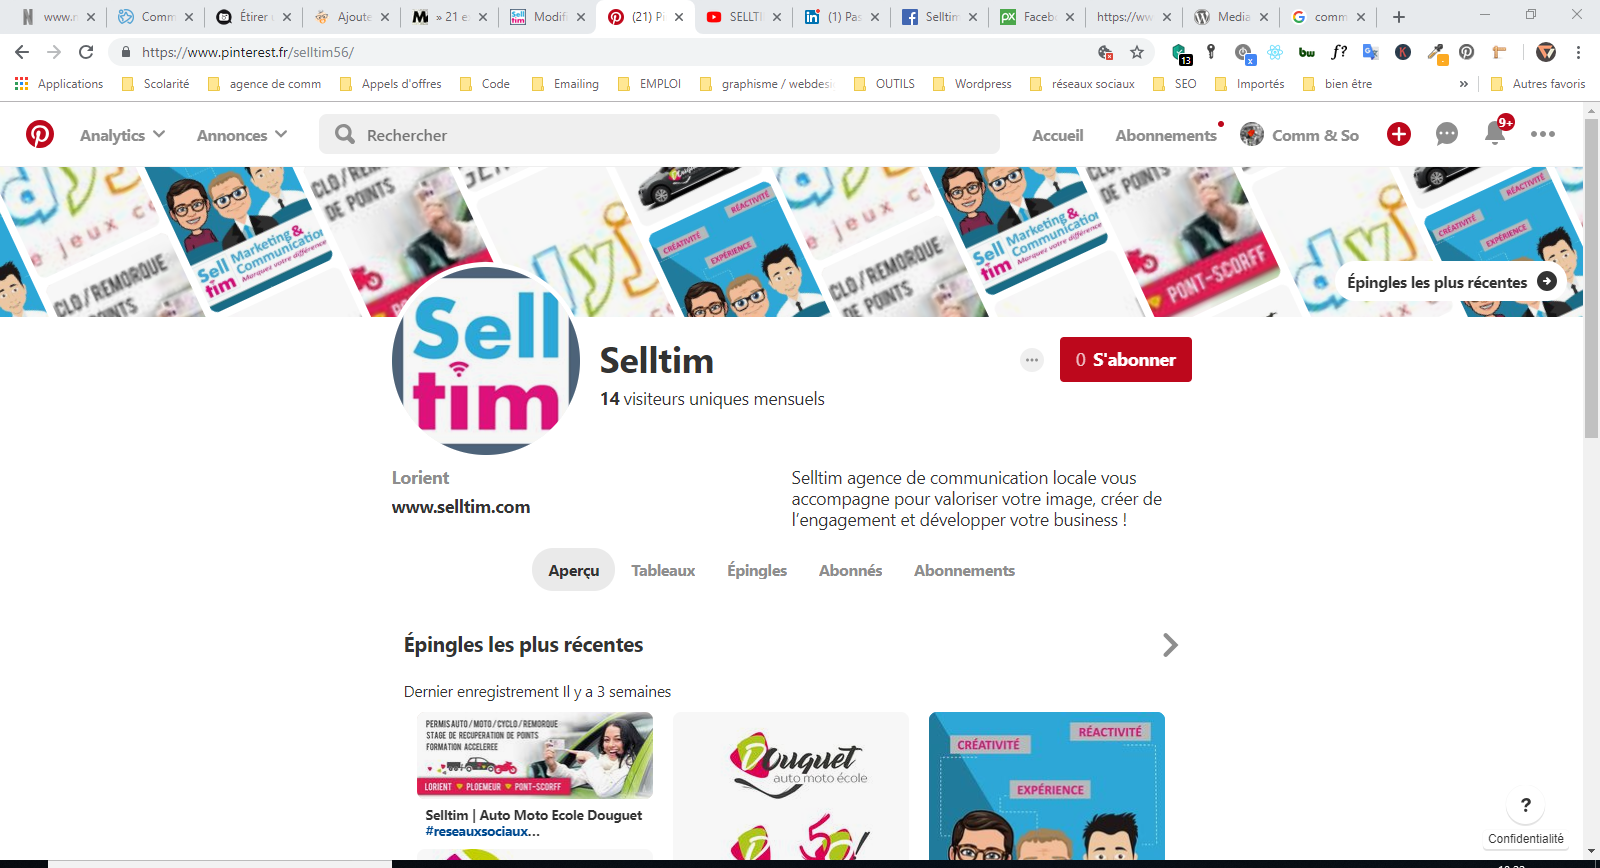 selltim-pinterest